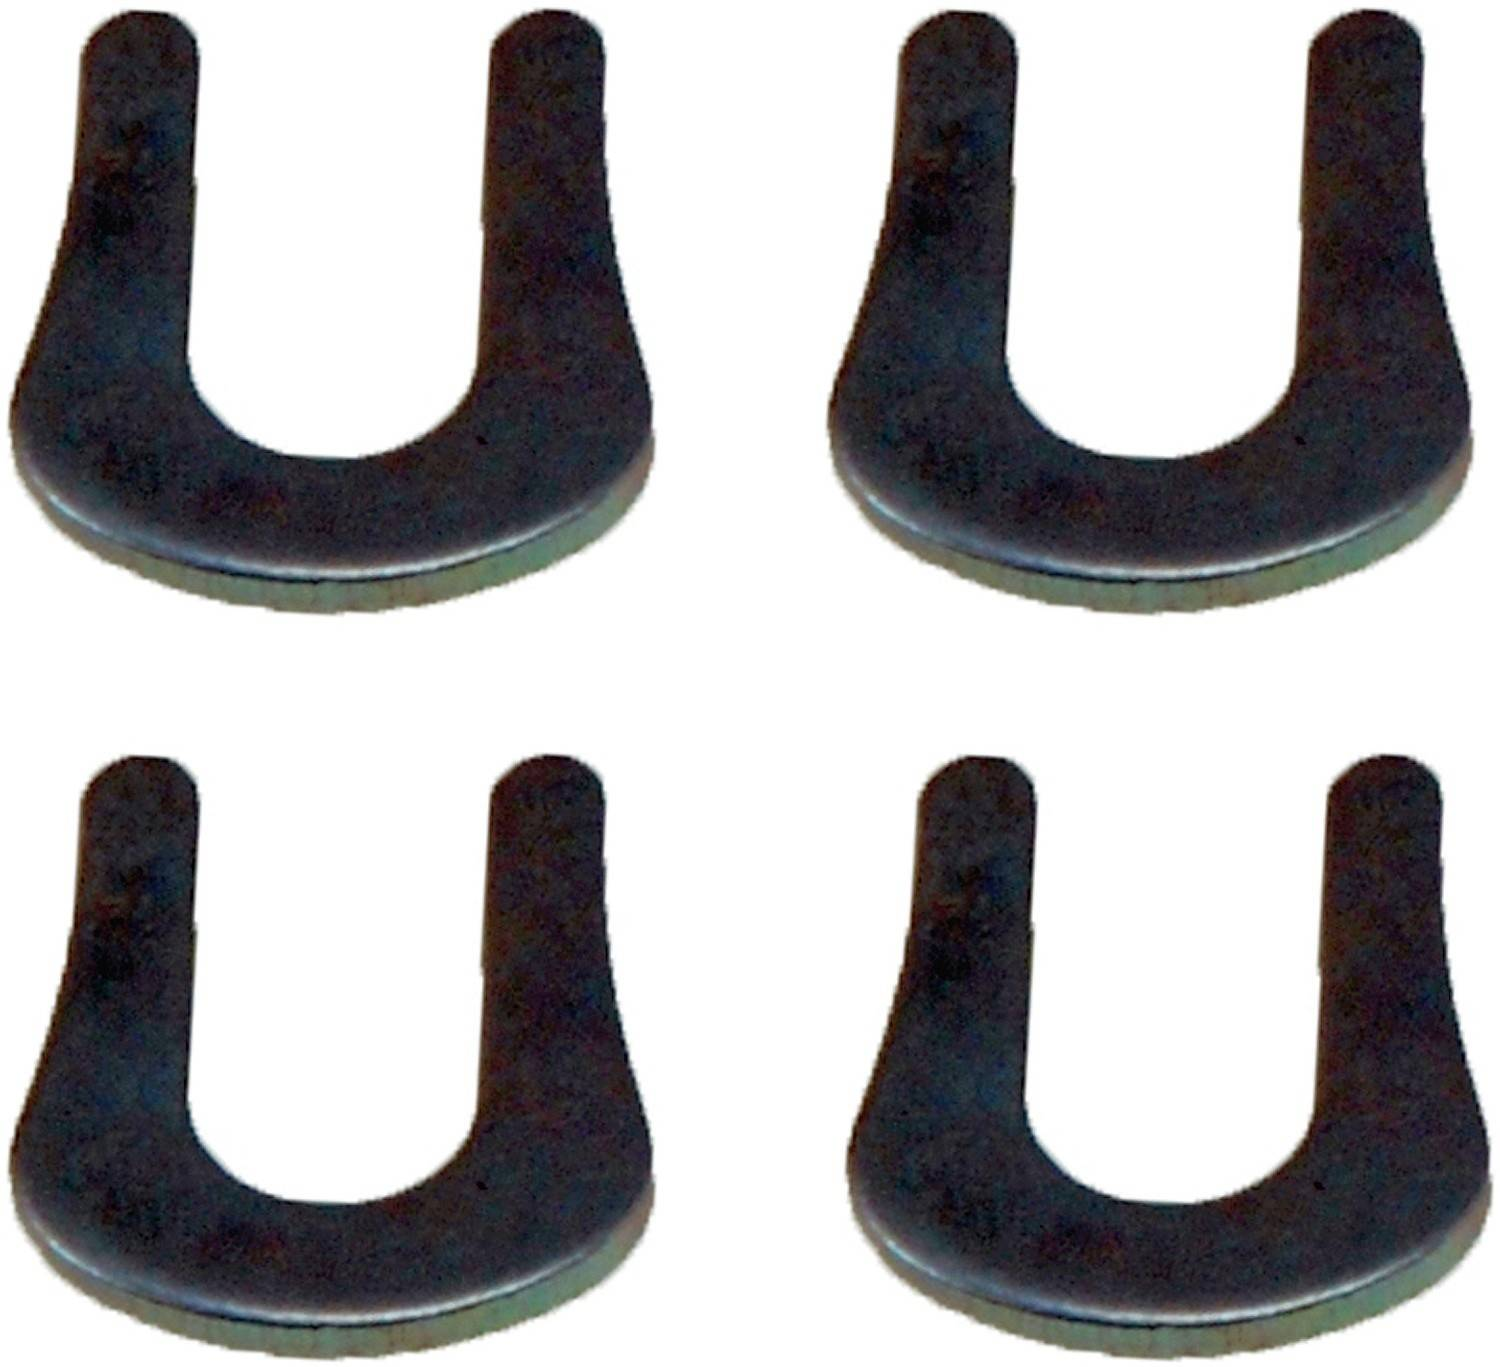 DORMAN - FIRST STOP - Drum Brake Shoe Spring Hold Down Pin Clip - DBP HW1177